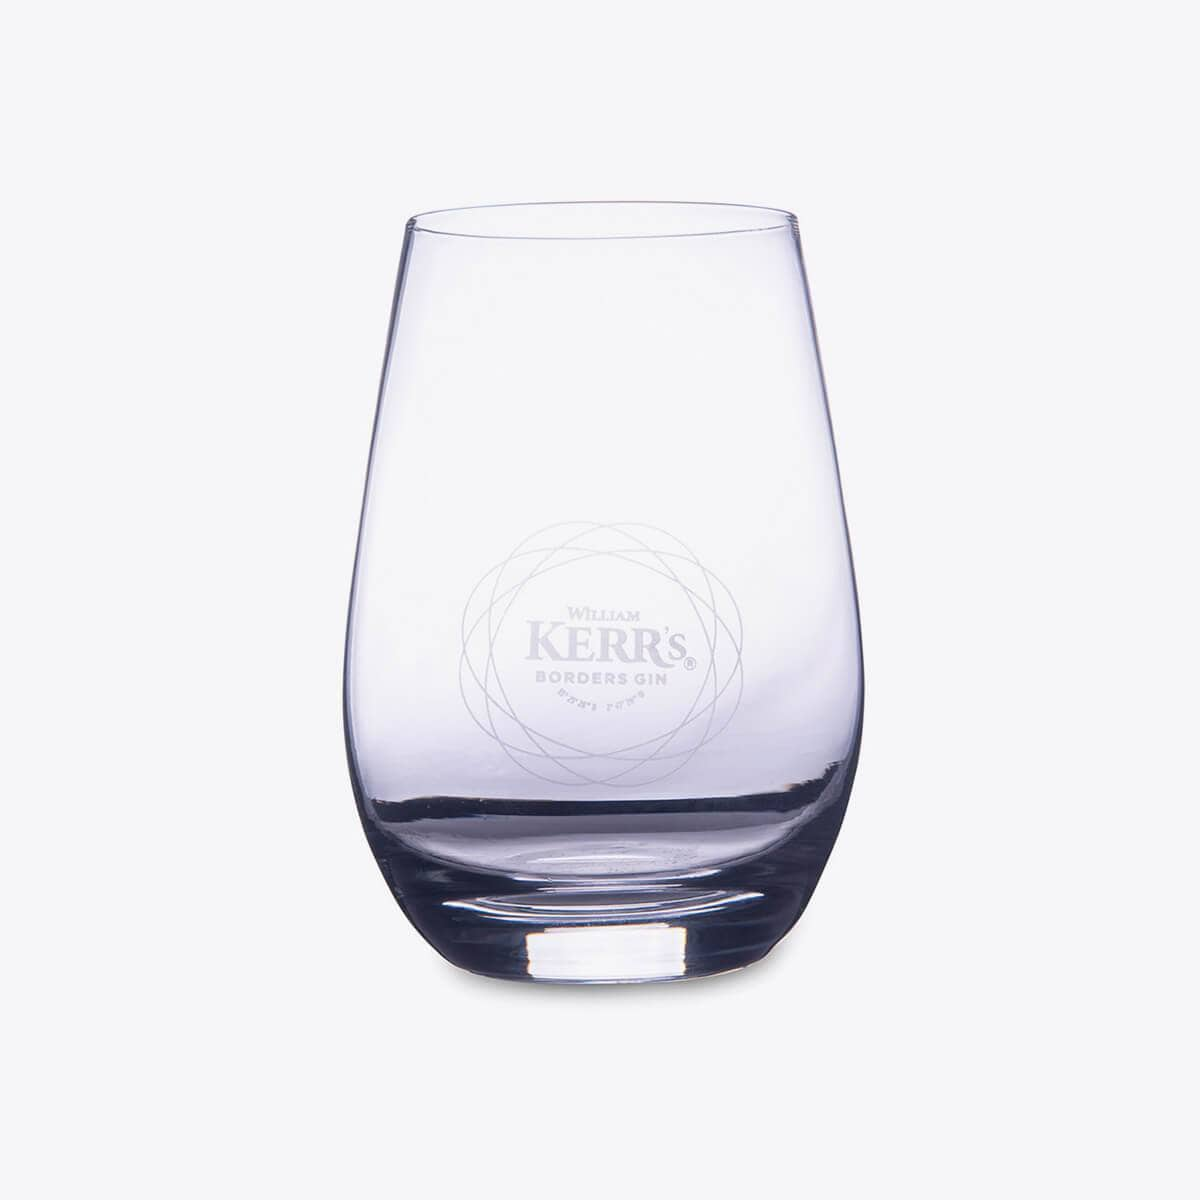 William Kerr Tumbler